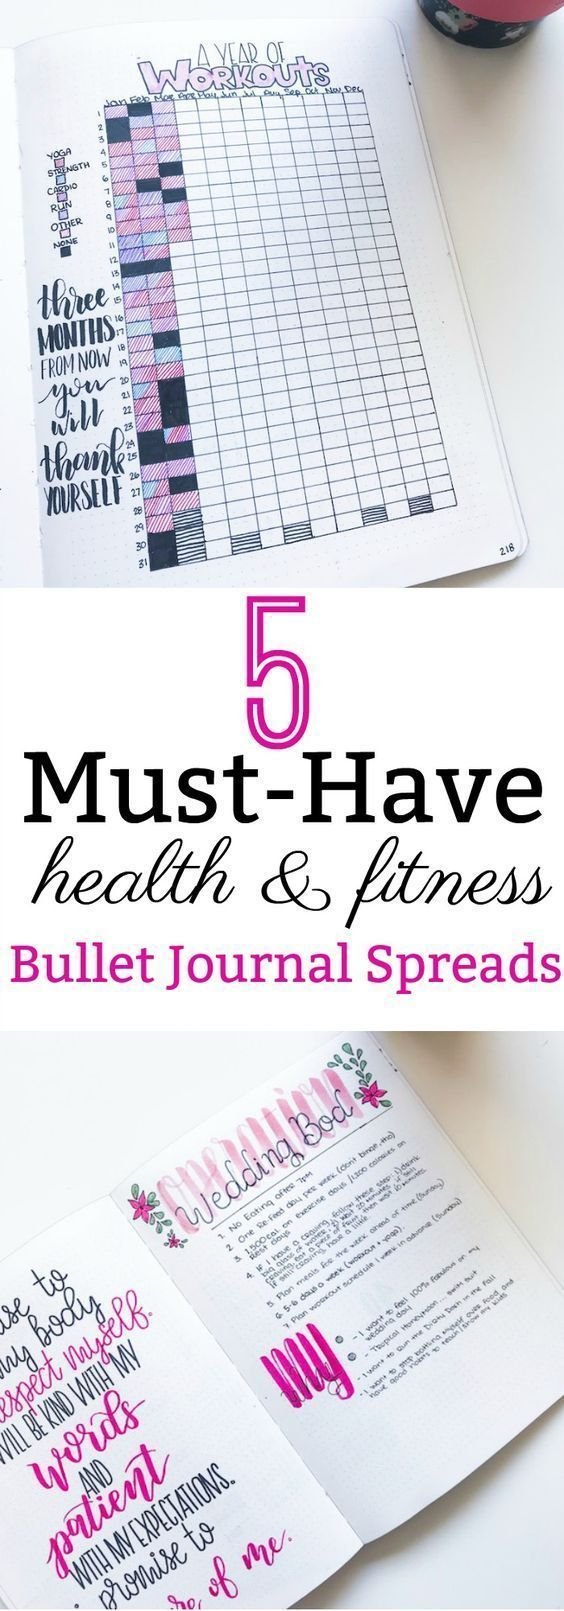 5 Must-Have Health and Fitness Bullet Journal Spreads